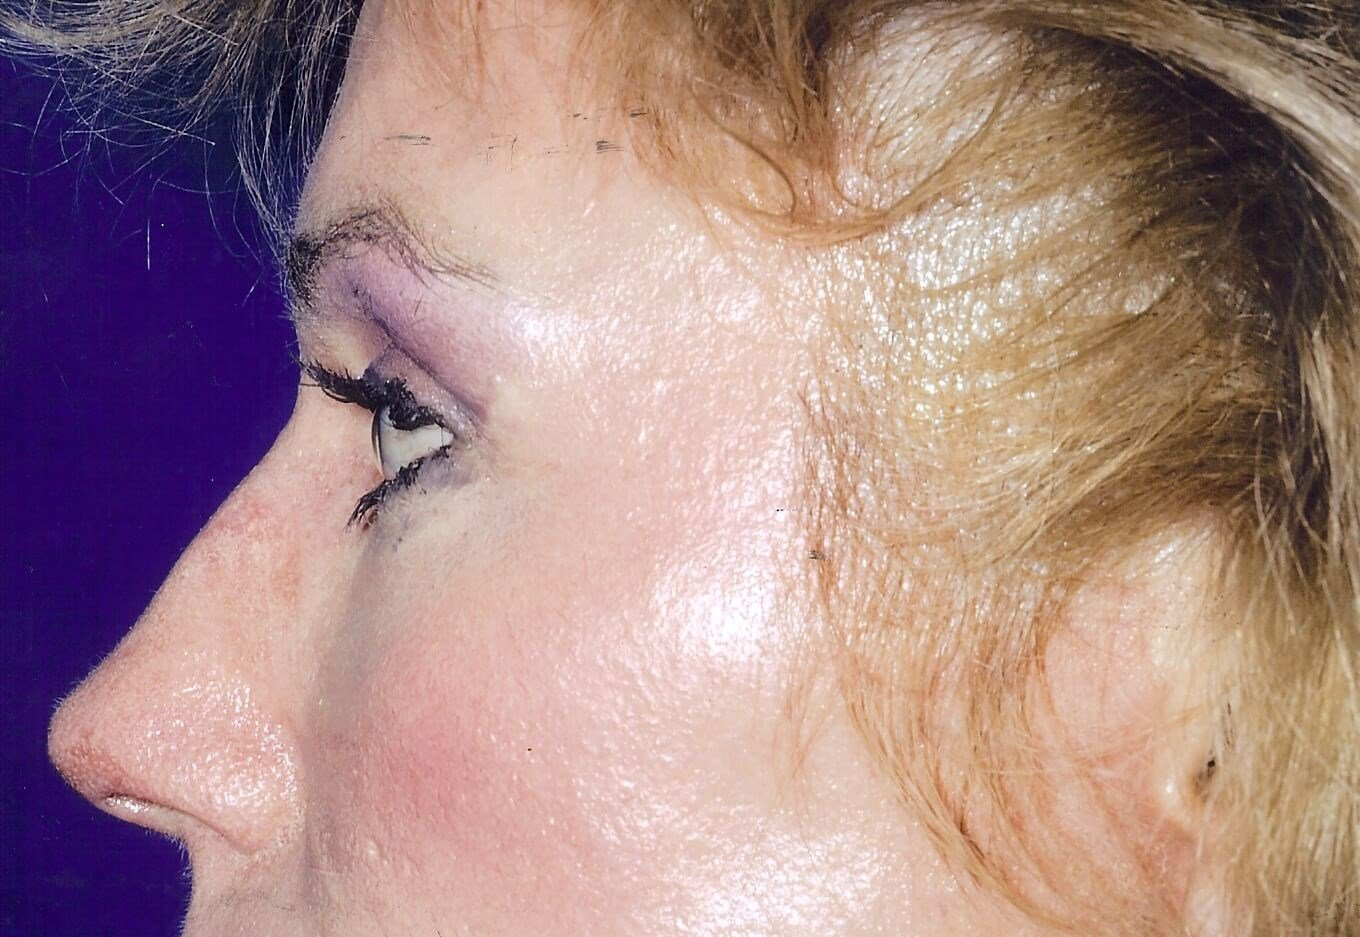 Newport Beach Chemical Peel Side View After